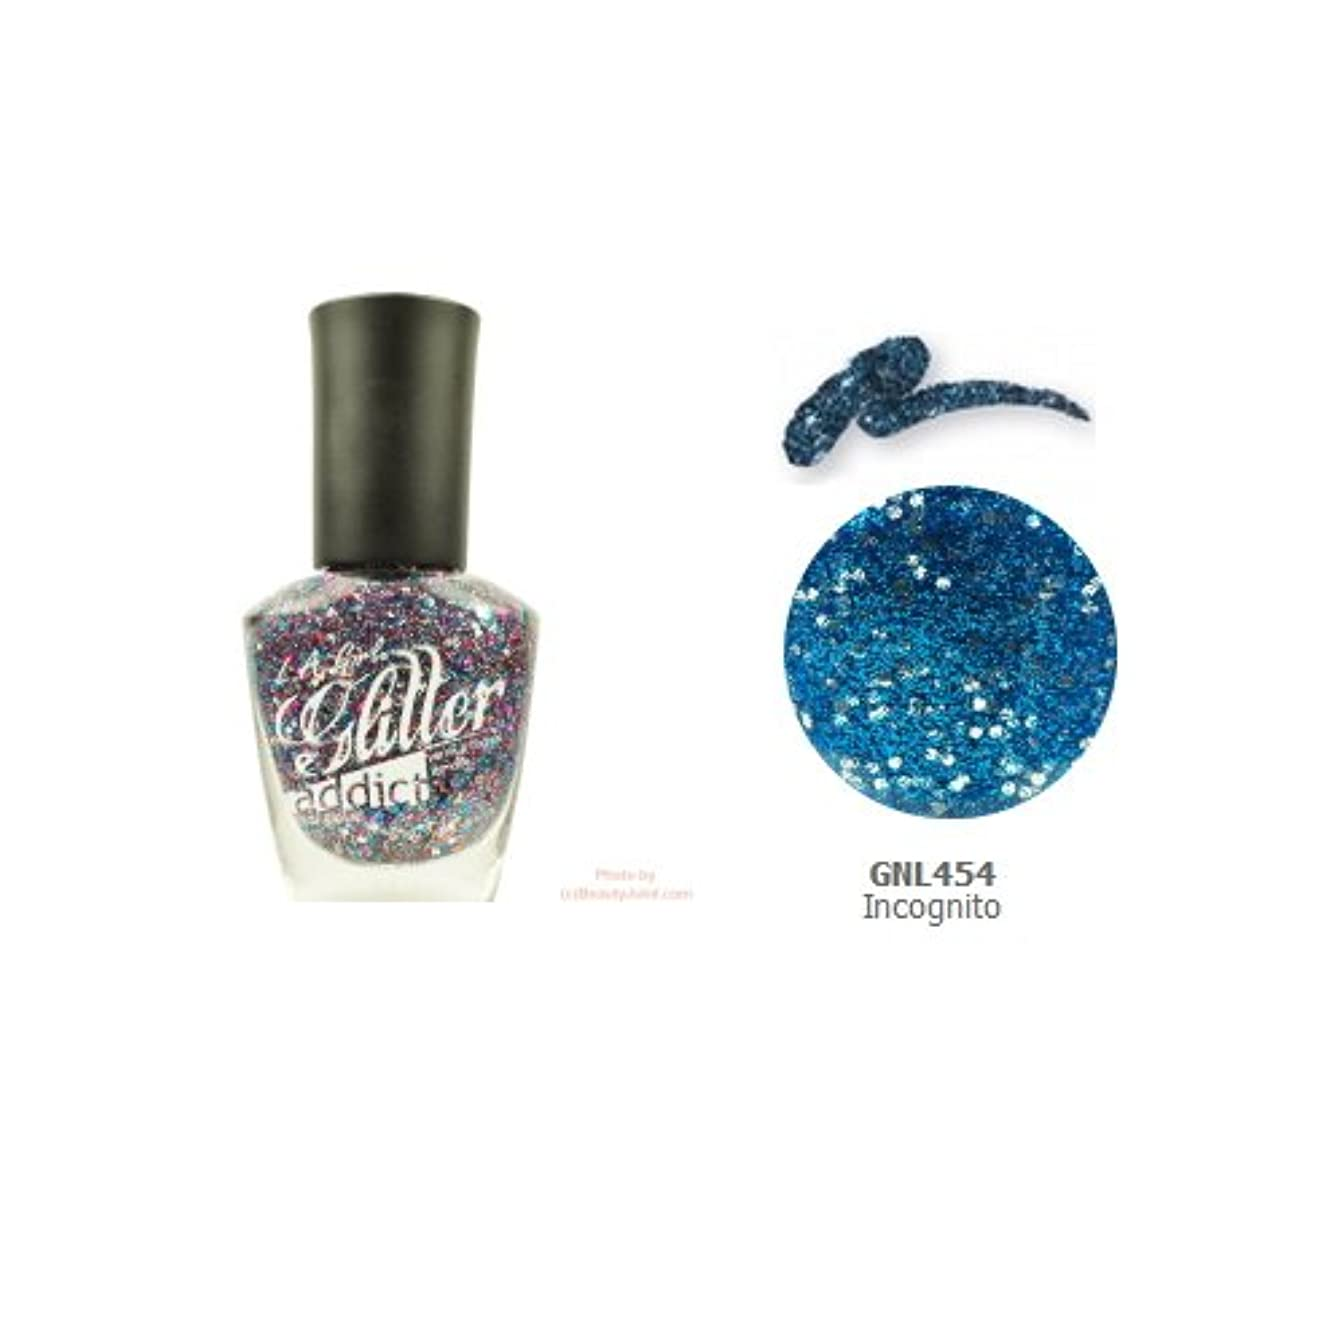 出します明快外科医(3 Pack) LA GIRL Glitter Addict Polish - Incognito (並行輸入品)